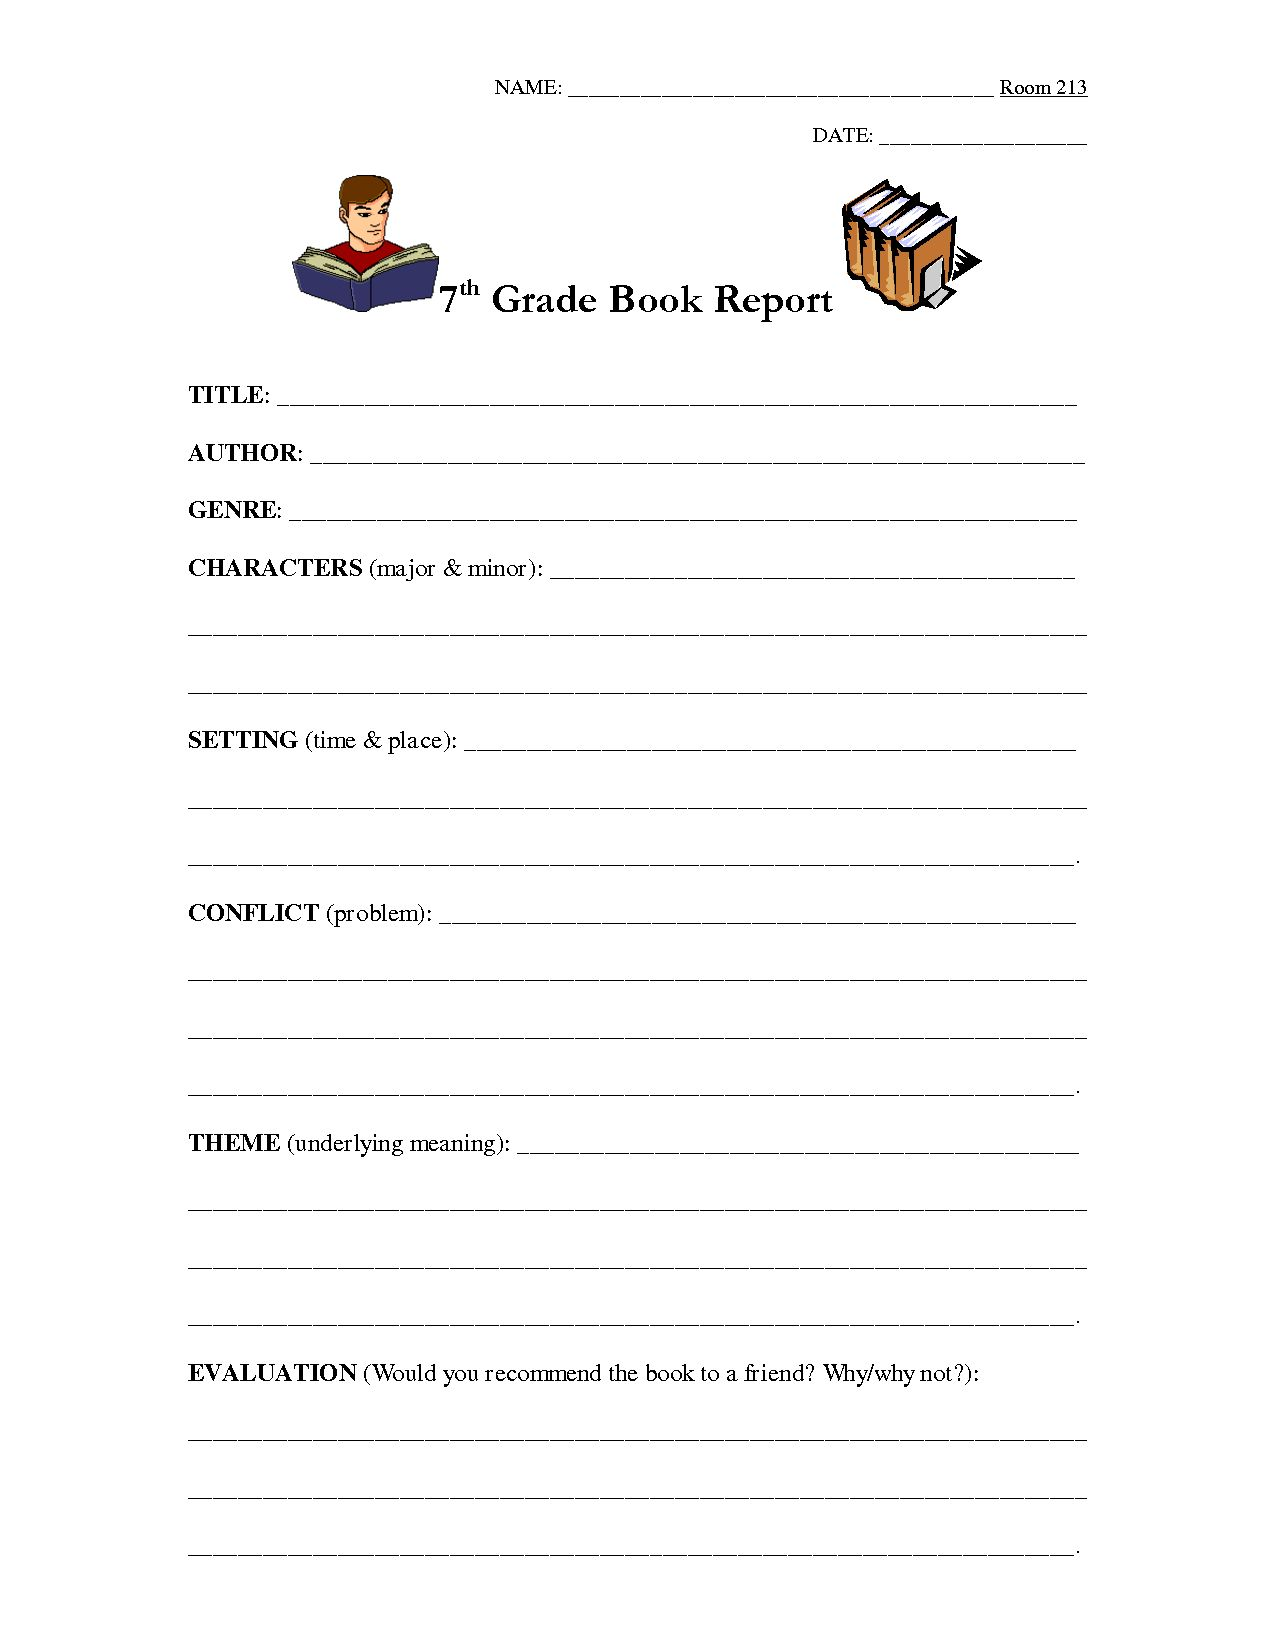 The Charming 7th Grade Book Report Outline Education Book Report With Student Grade Repo Book Report Templates Book Report High School Book Report Template